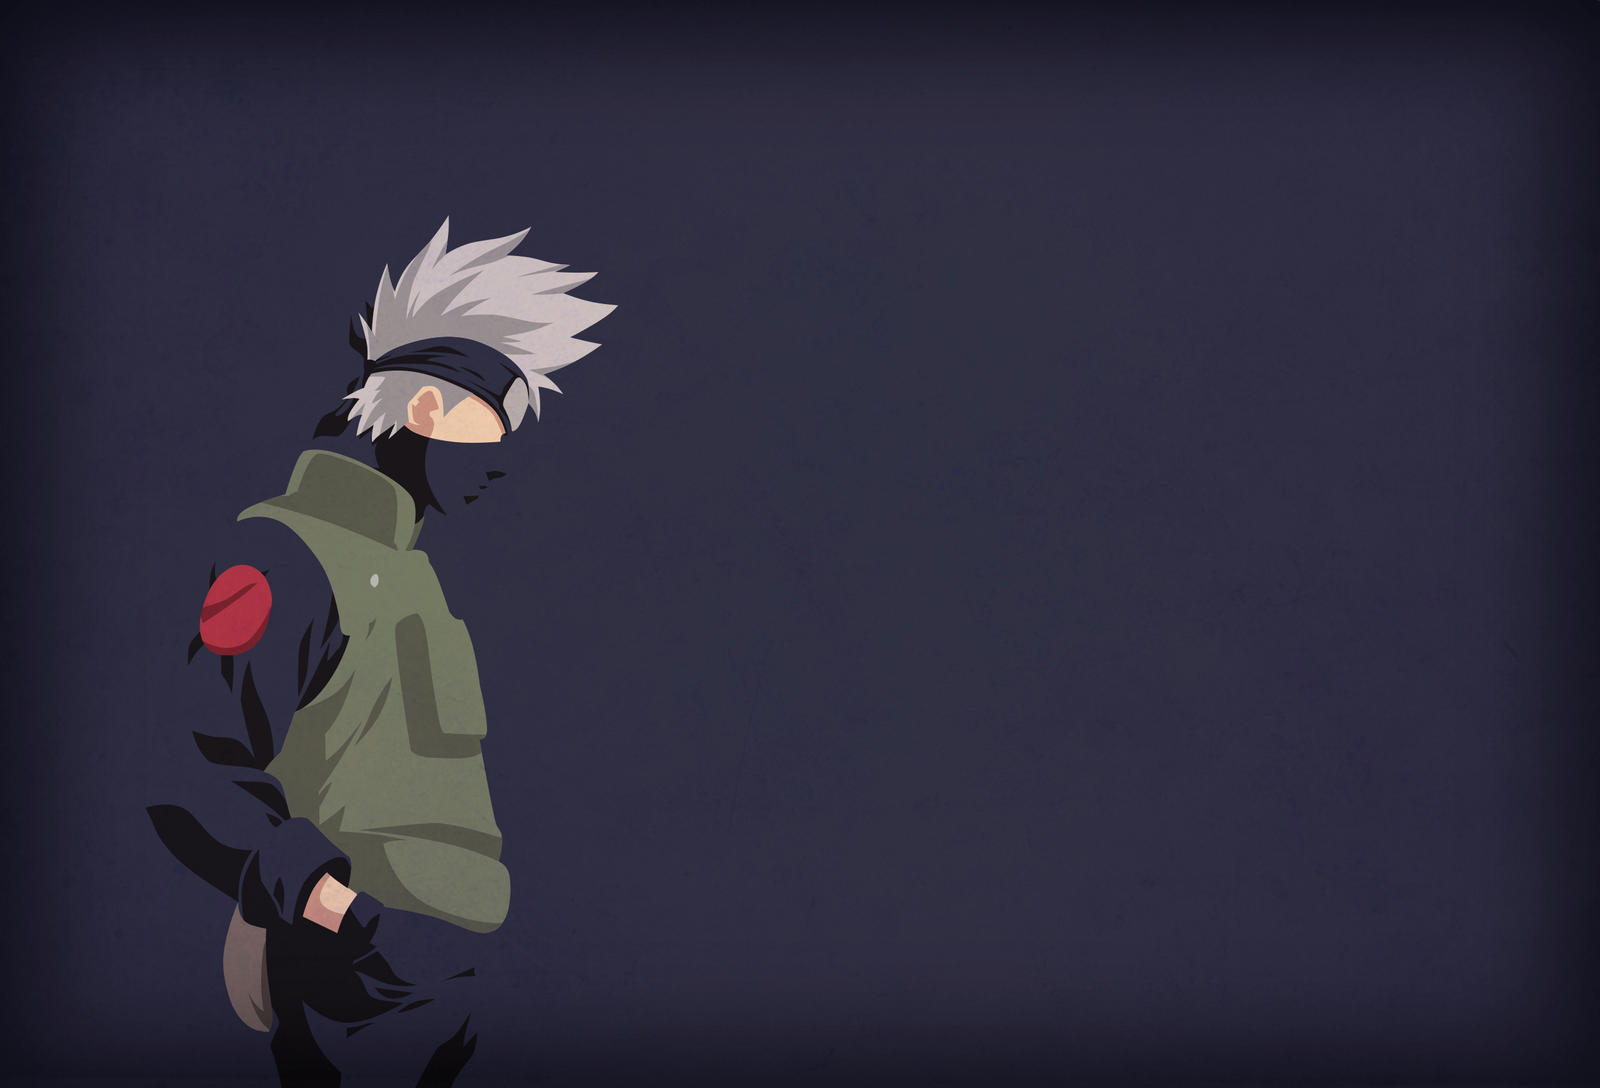 Kakashi Sensei Minimalist Wallpaper By Horira21 On Deviantart